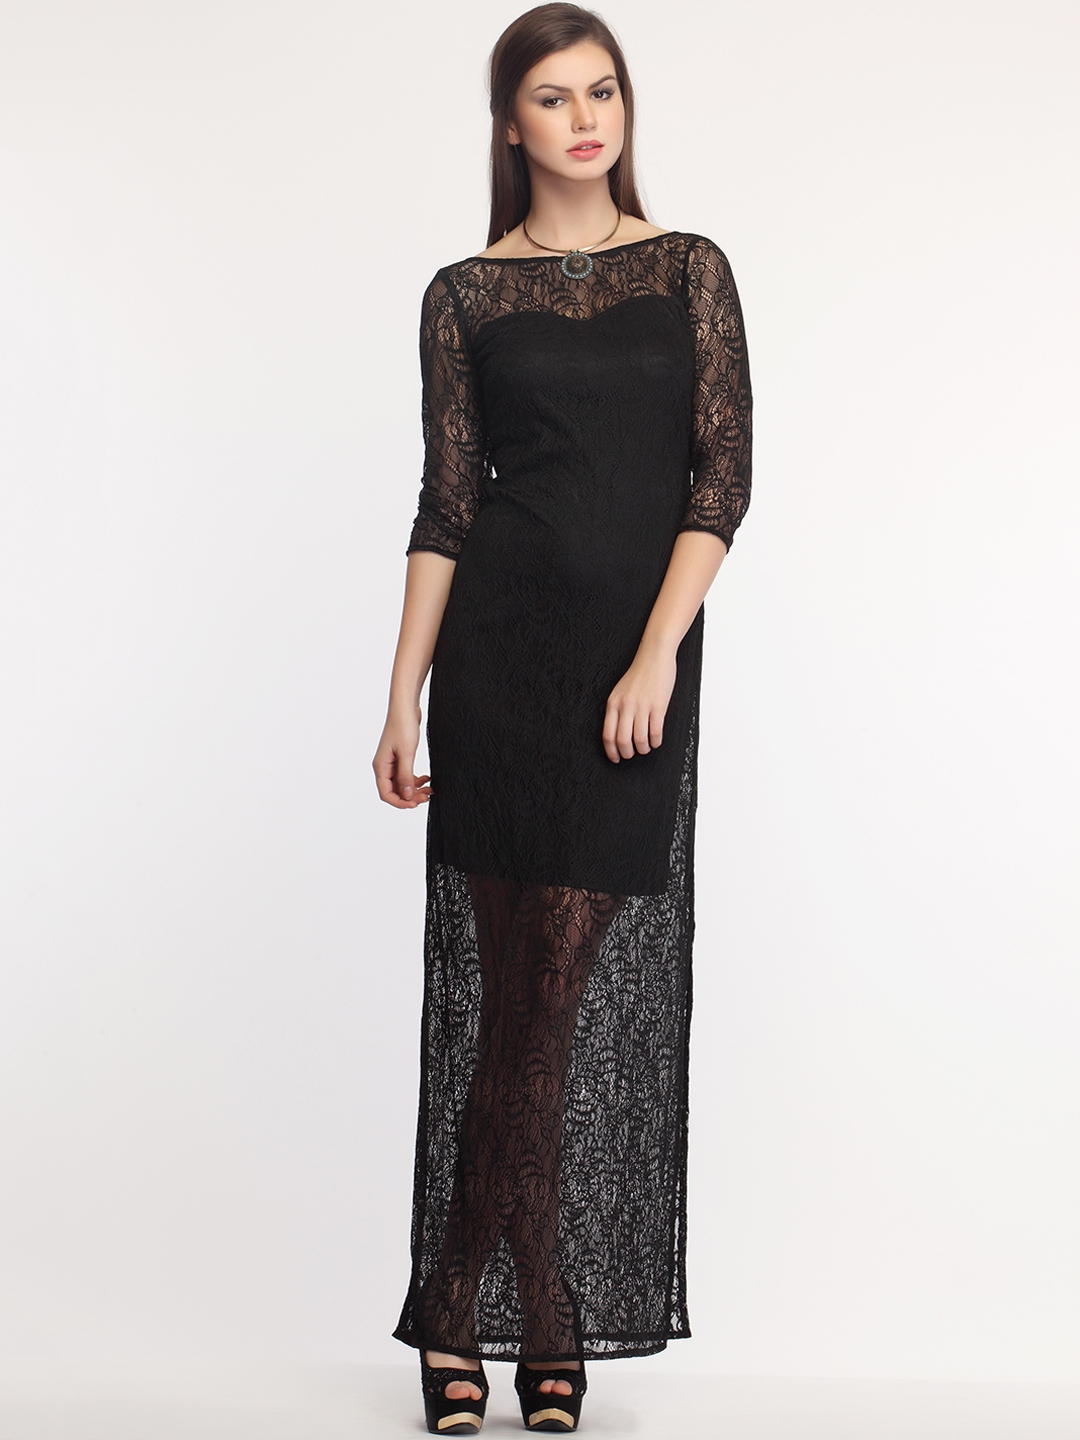 be67325d842 Buy Colormode Women Black Self Design Lace Maxi Dress With Deep Back ...